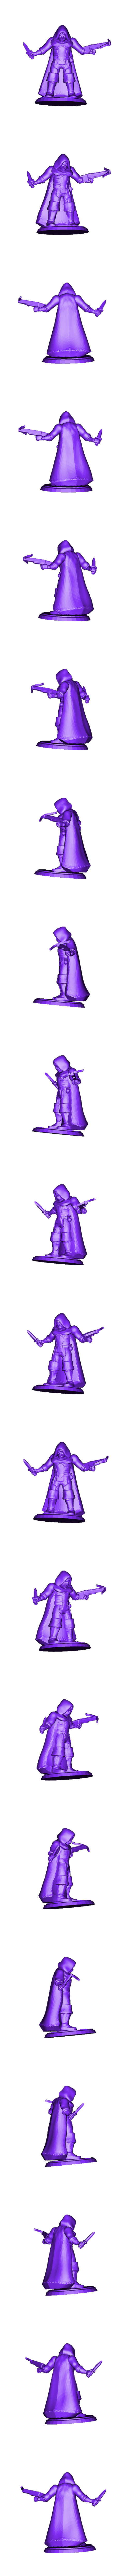 assassin_arms_out.stl Download free STL file Fantasy Mini Collection (multiple poses) • 3D printable object, stockto